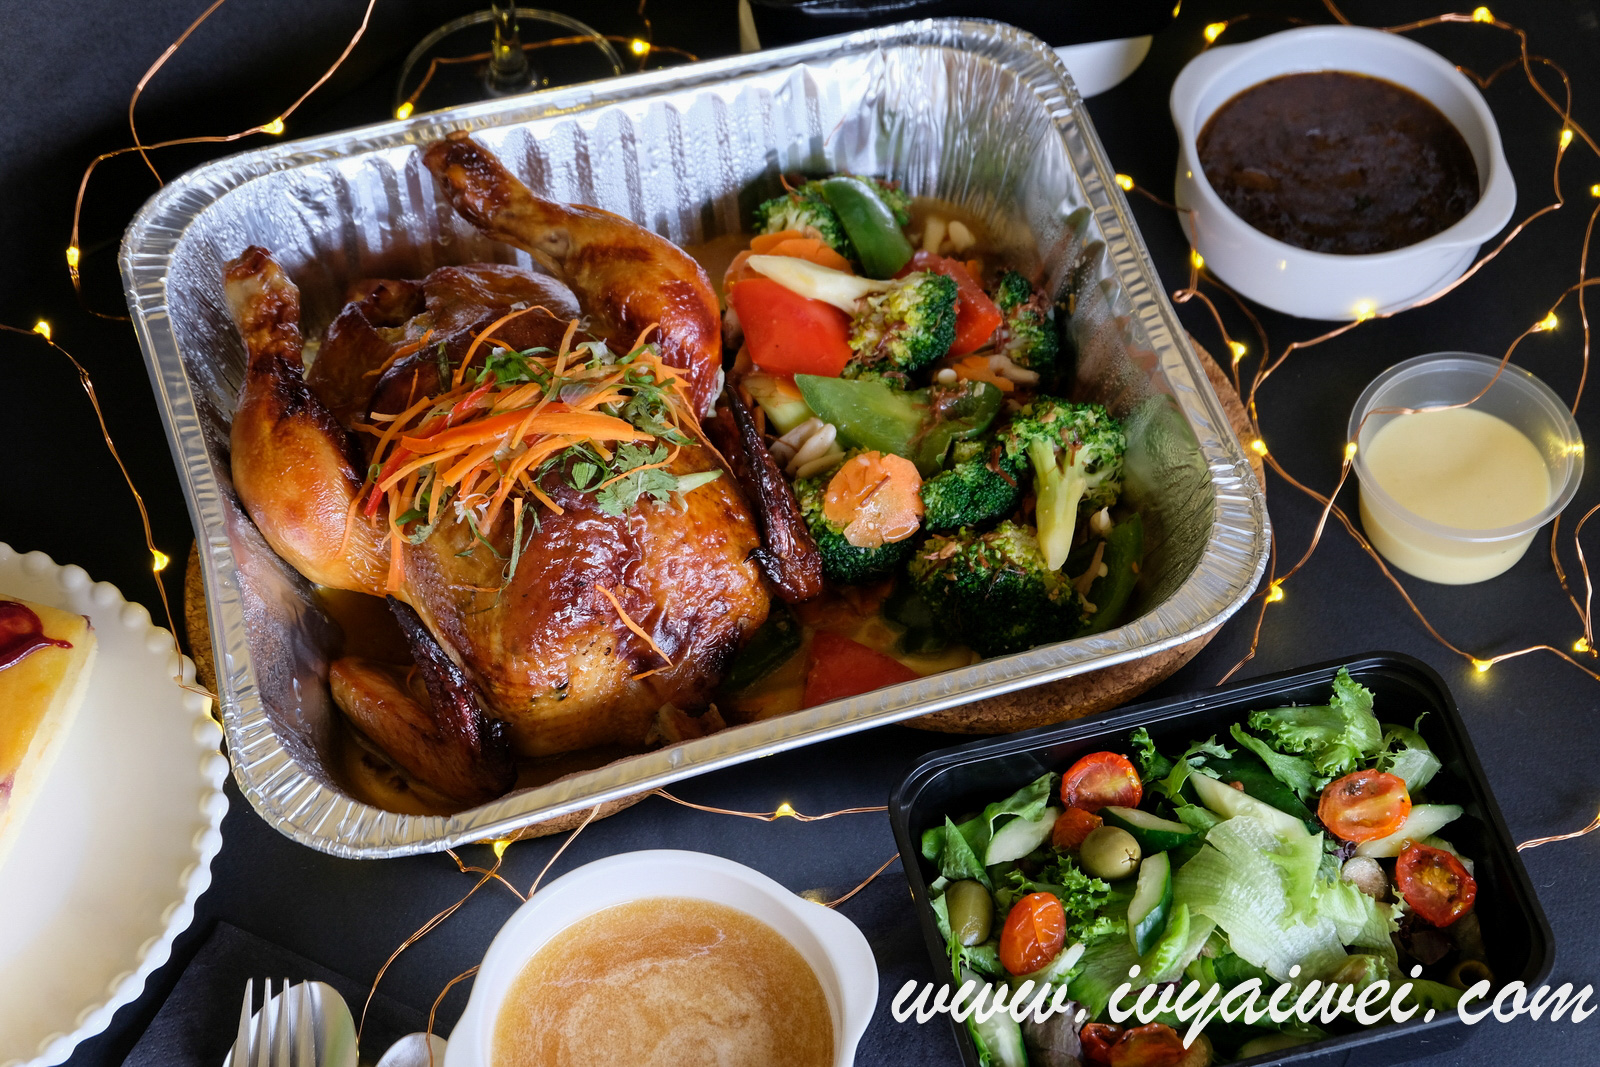 Family Feasts by Quan's Kitchen @ Four Points by Sheraton, Chinatown